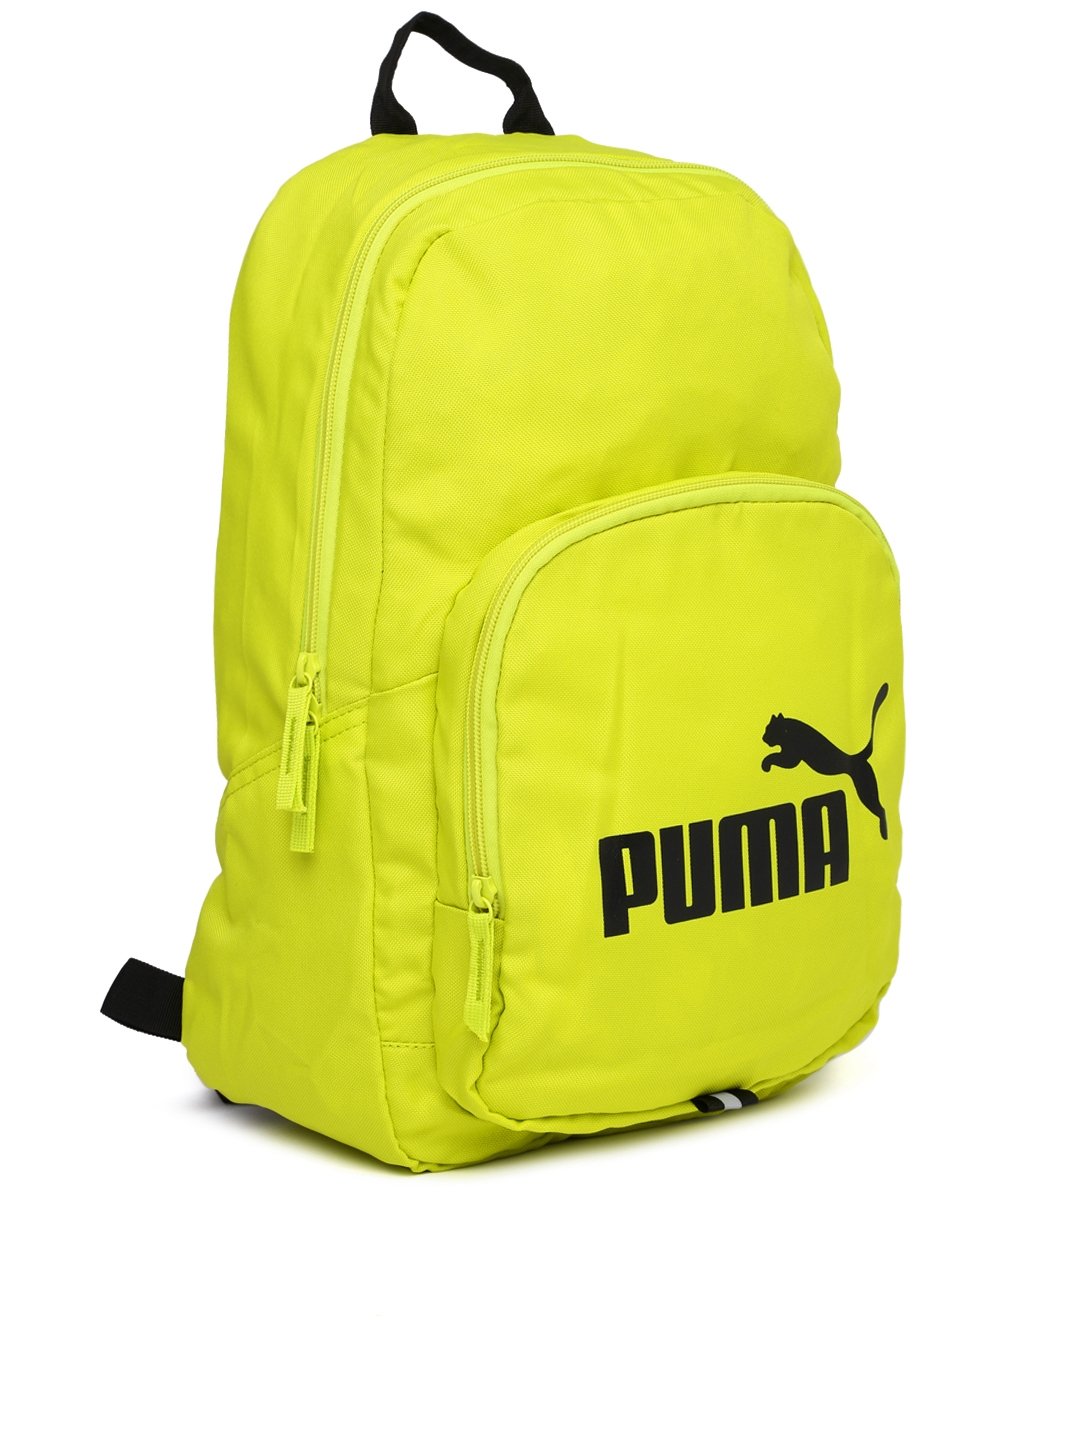 7a77fda55 Buy Puma Unisex Fluorescent Green Phase Backpack - Backpacks for ...